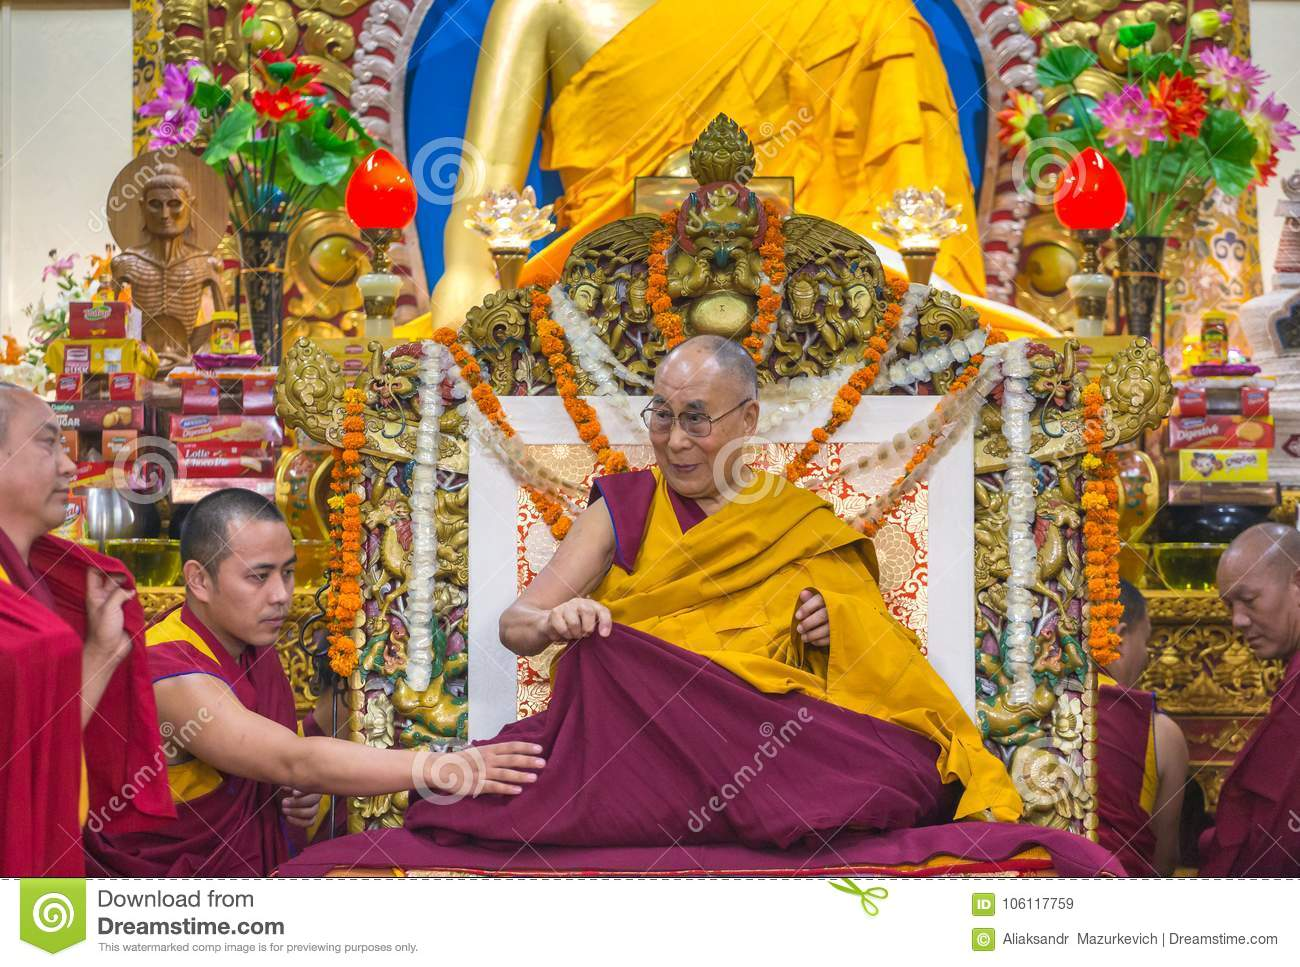 His Holiness the 14 Dalai Lama Tenzin Gyatso gives teachings in his residence in Dharamsala, India.